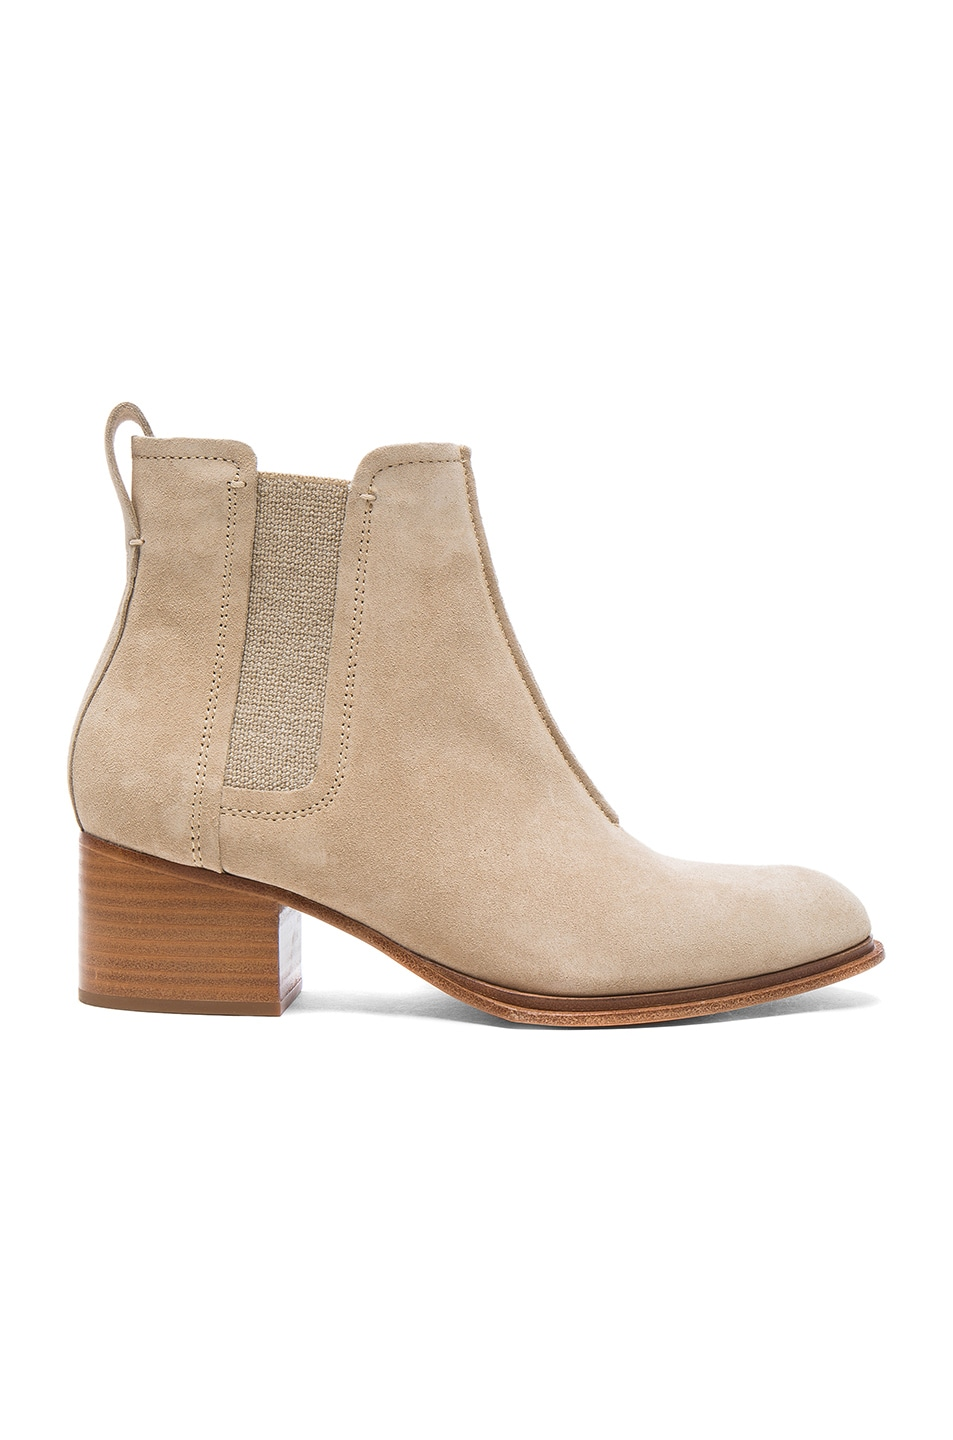 Image 1 of Rag & Bone Suede Walker II Boots in Stucco Suede